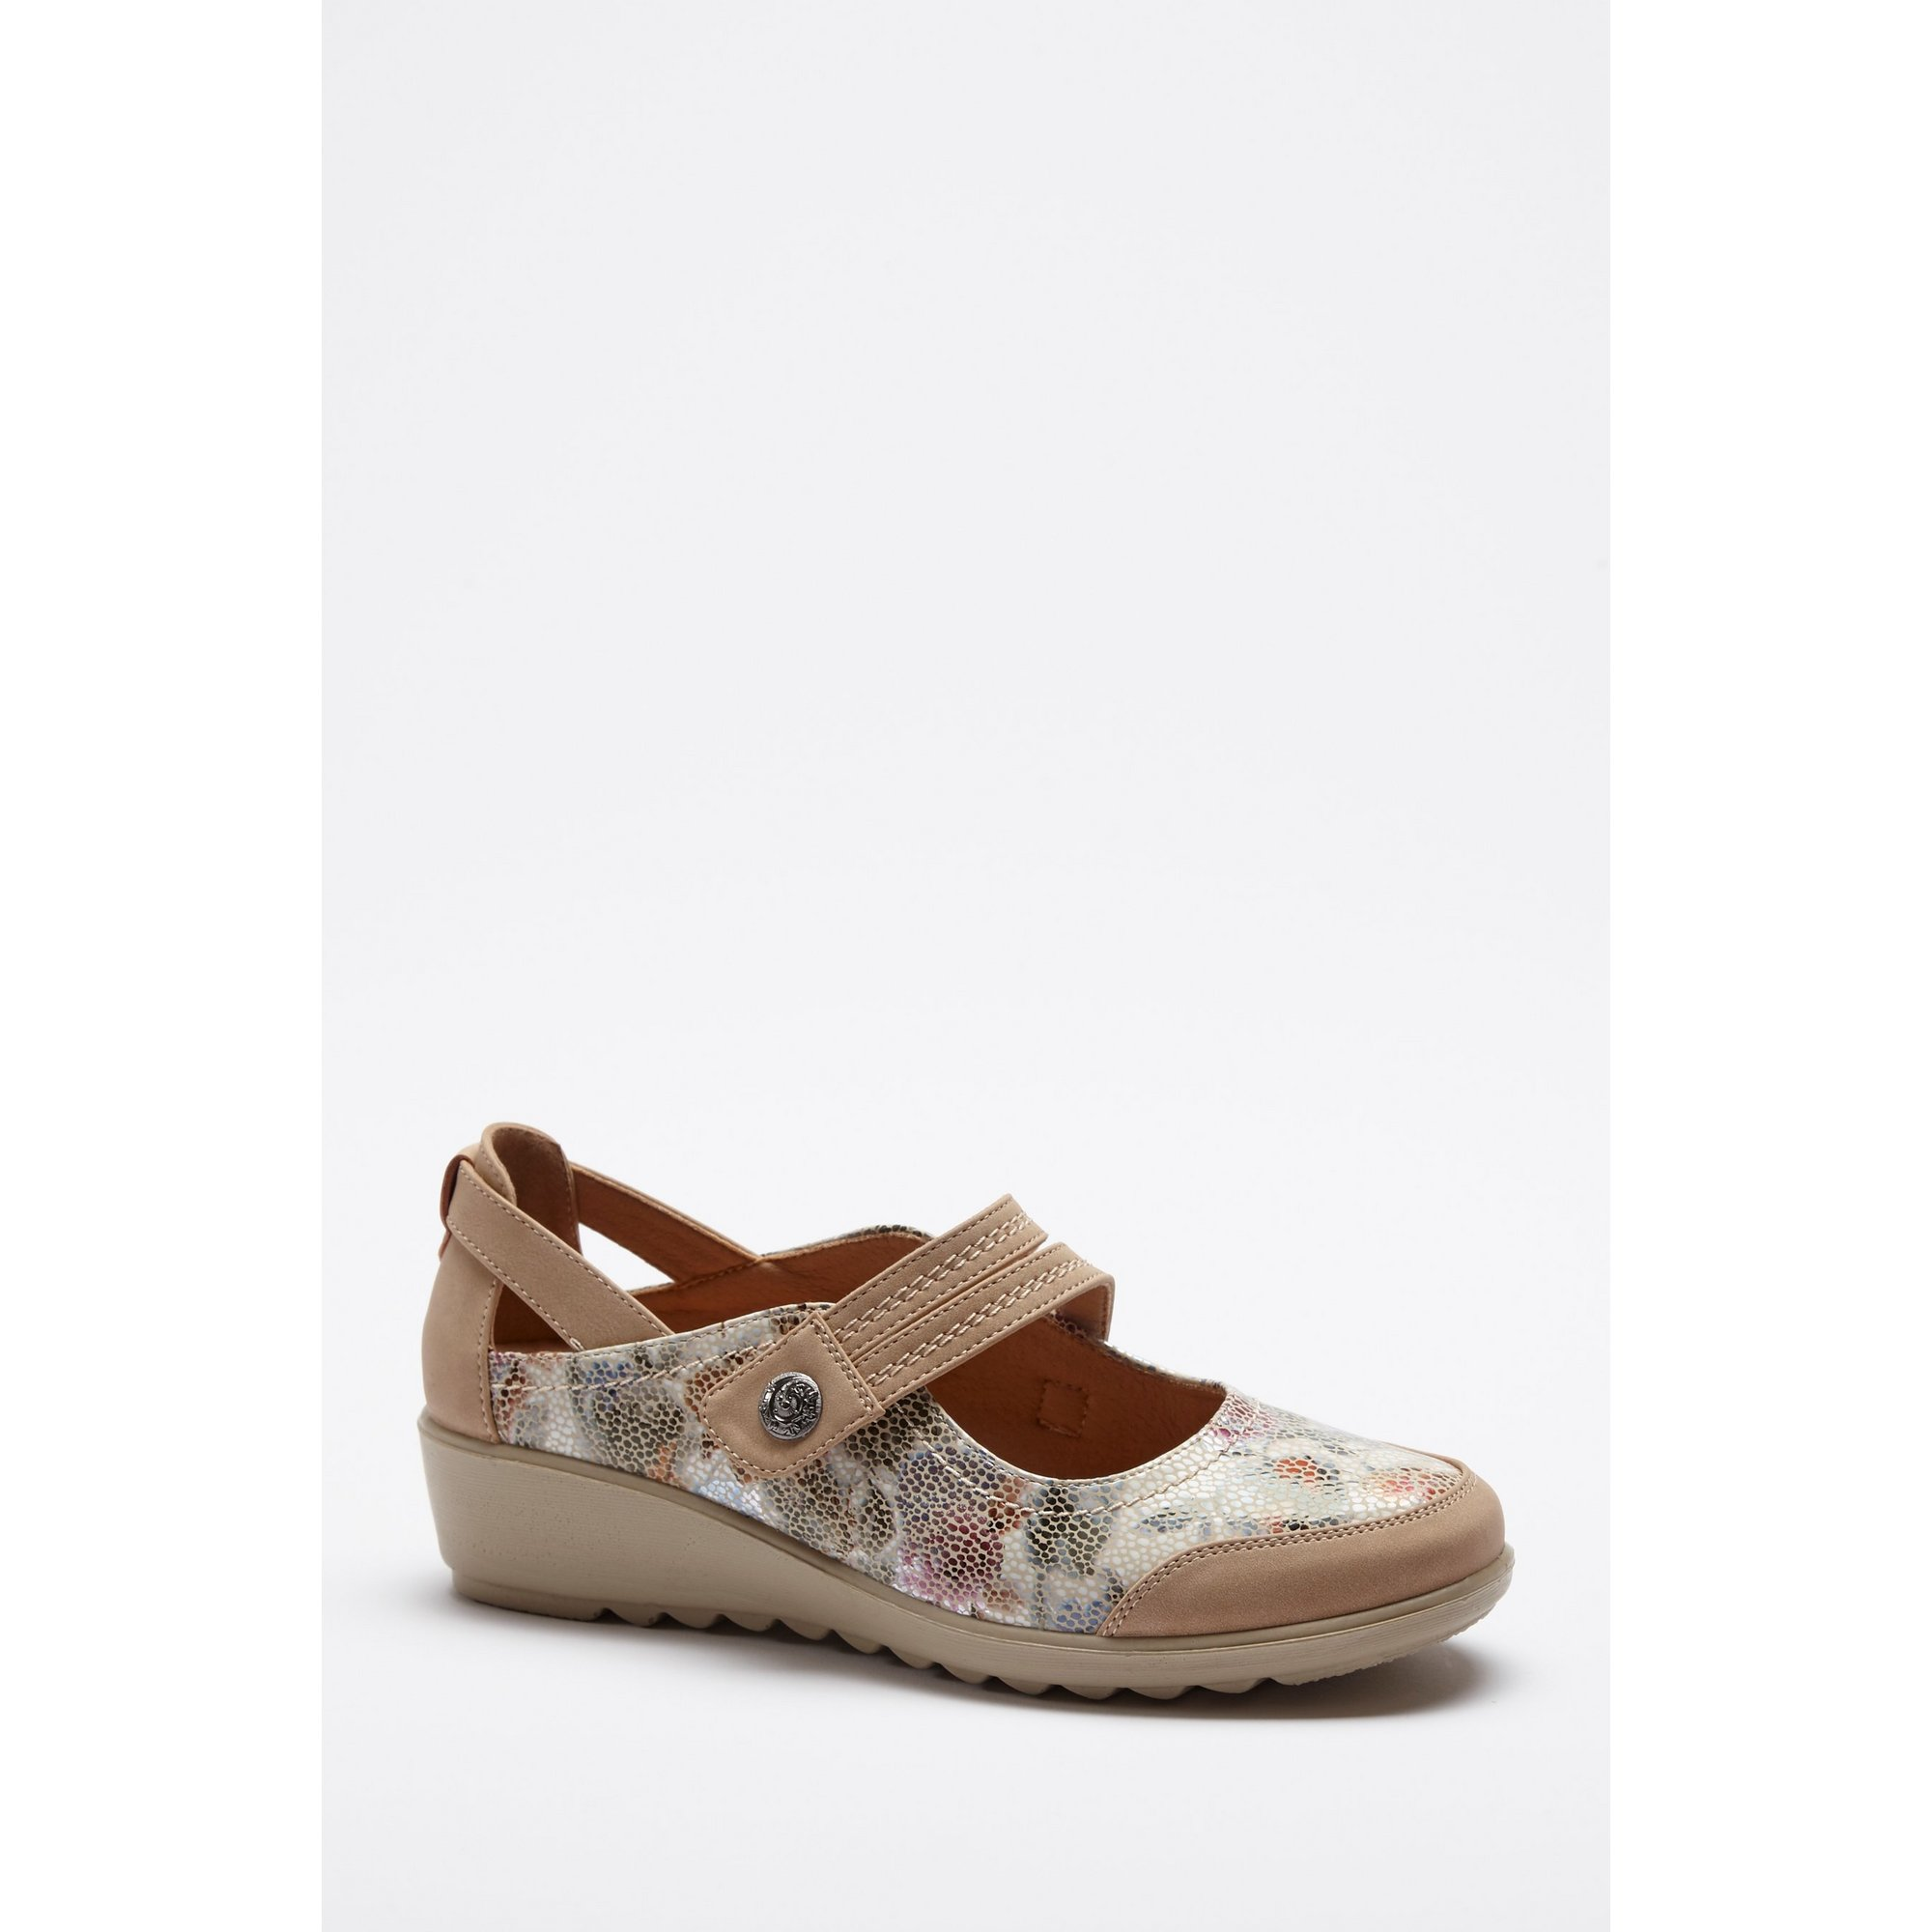 Image of Cushion Walk Floral Mary Beige Shoes